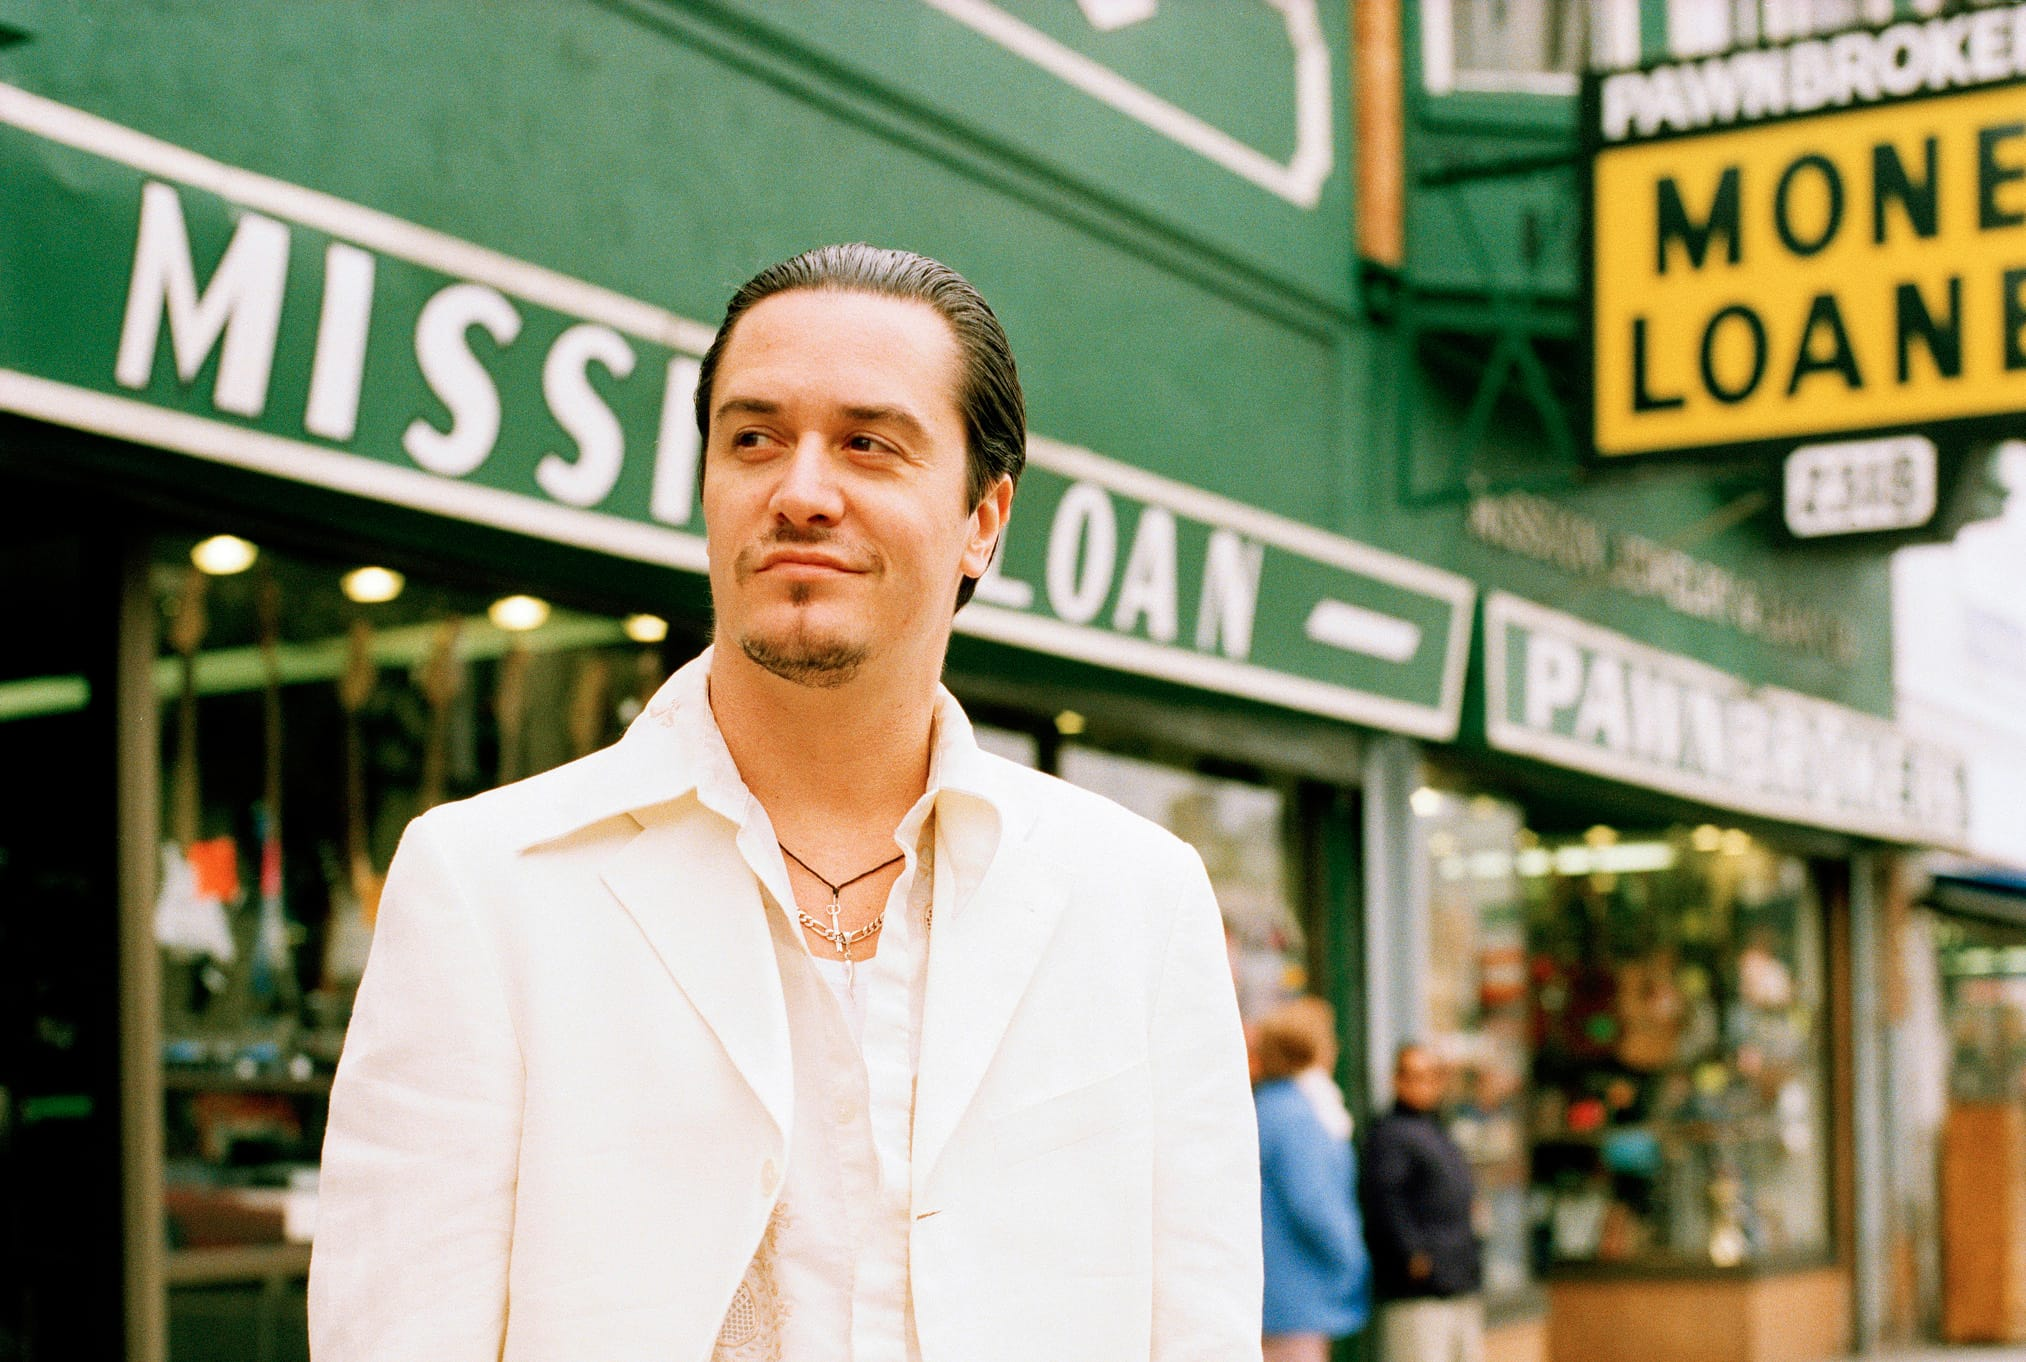 30 years after his Faith No More breakthrough, Mike Patton owns a record label that keeps turning profits